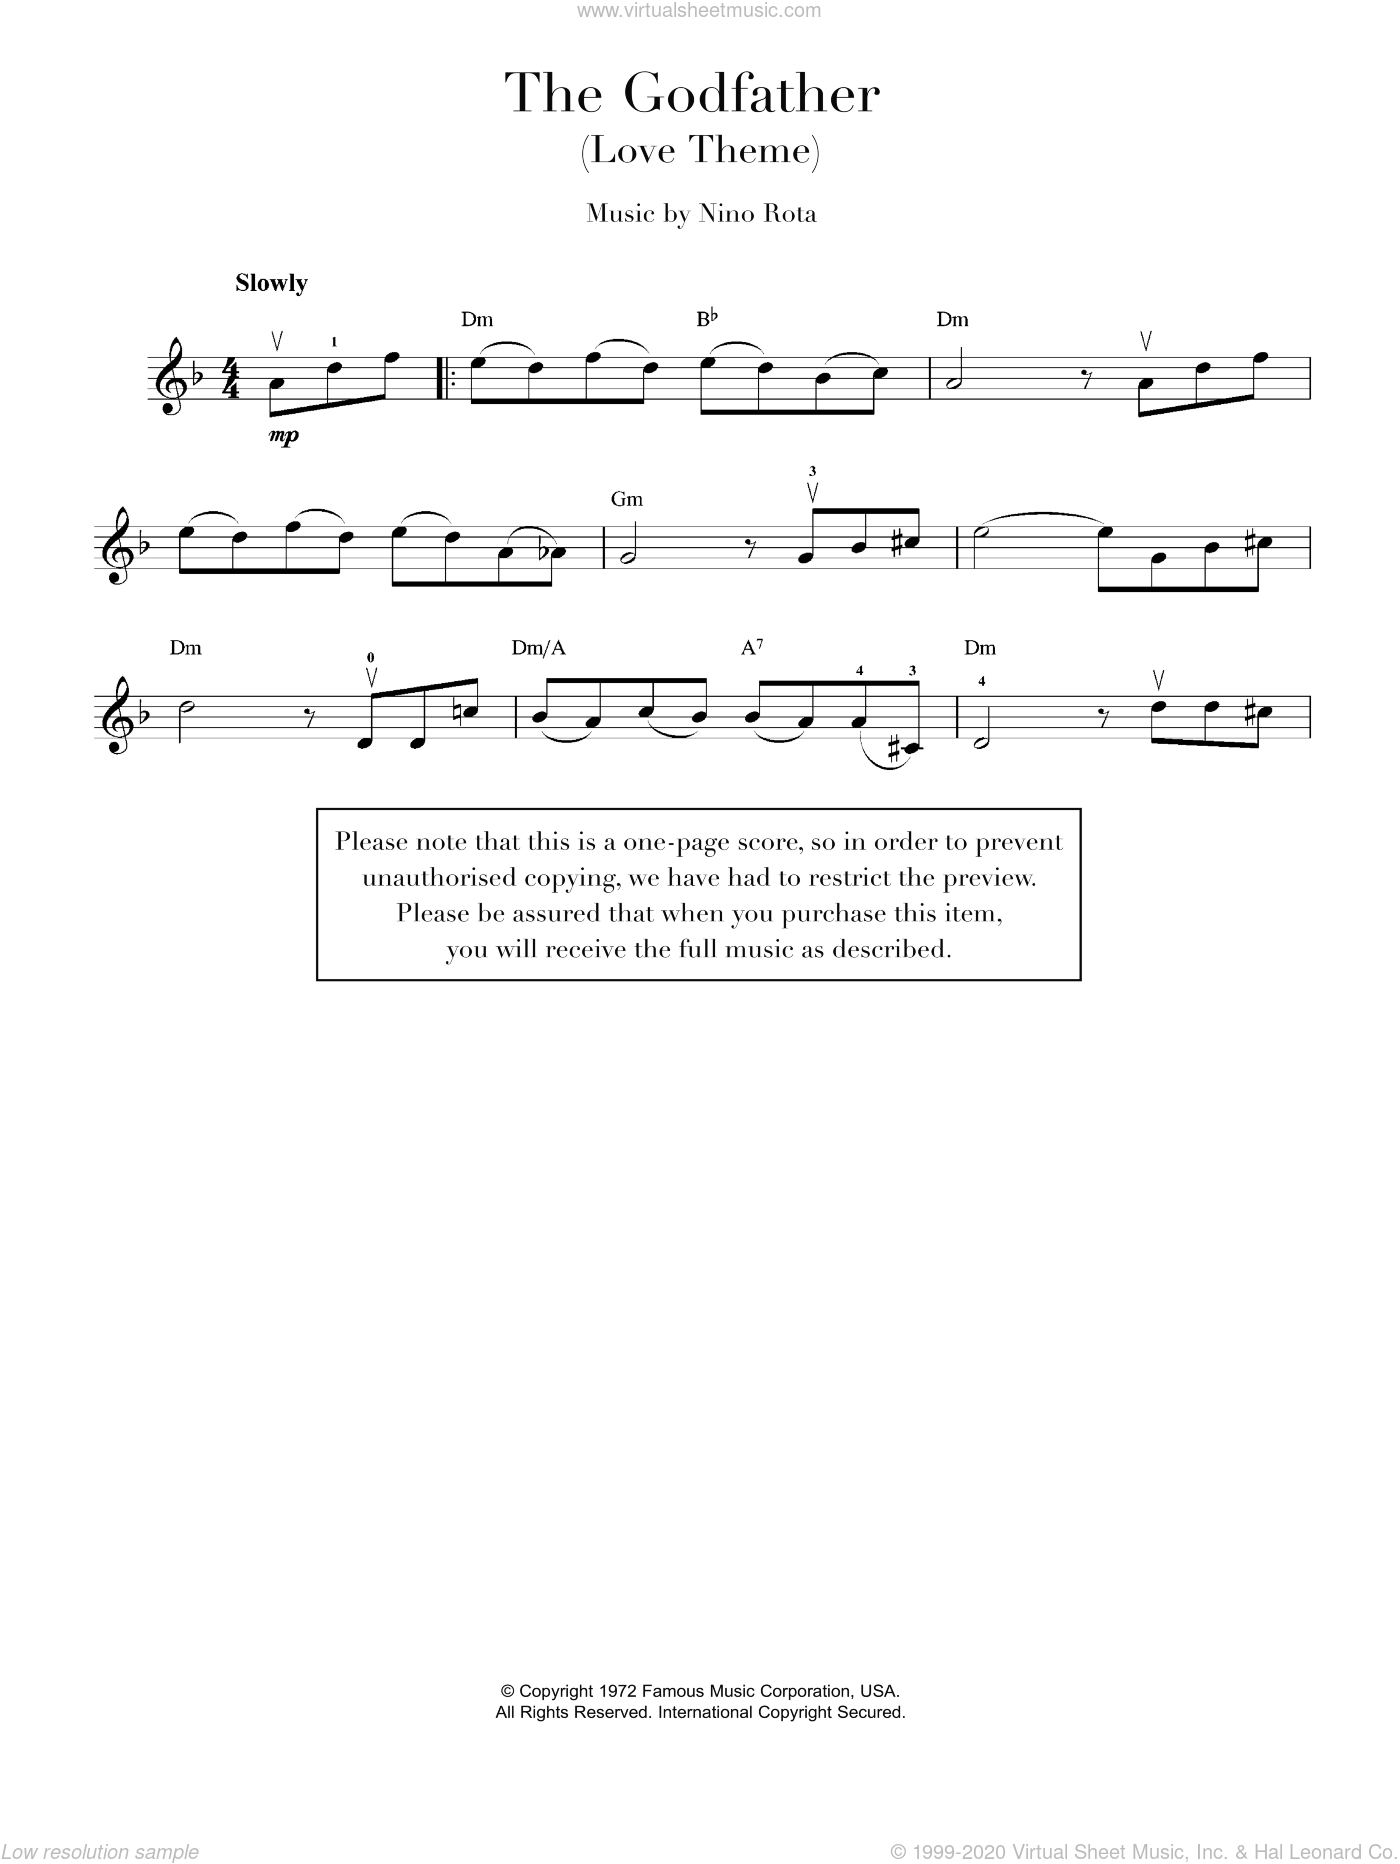 Theme from The Godfather sheet music for violin solo by Nino Rota. Score Image Preview.